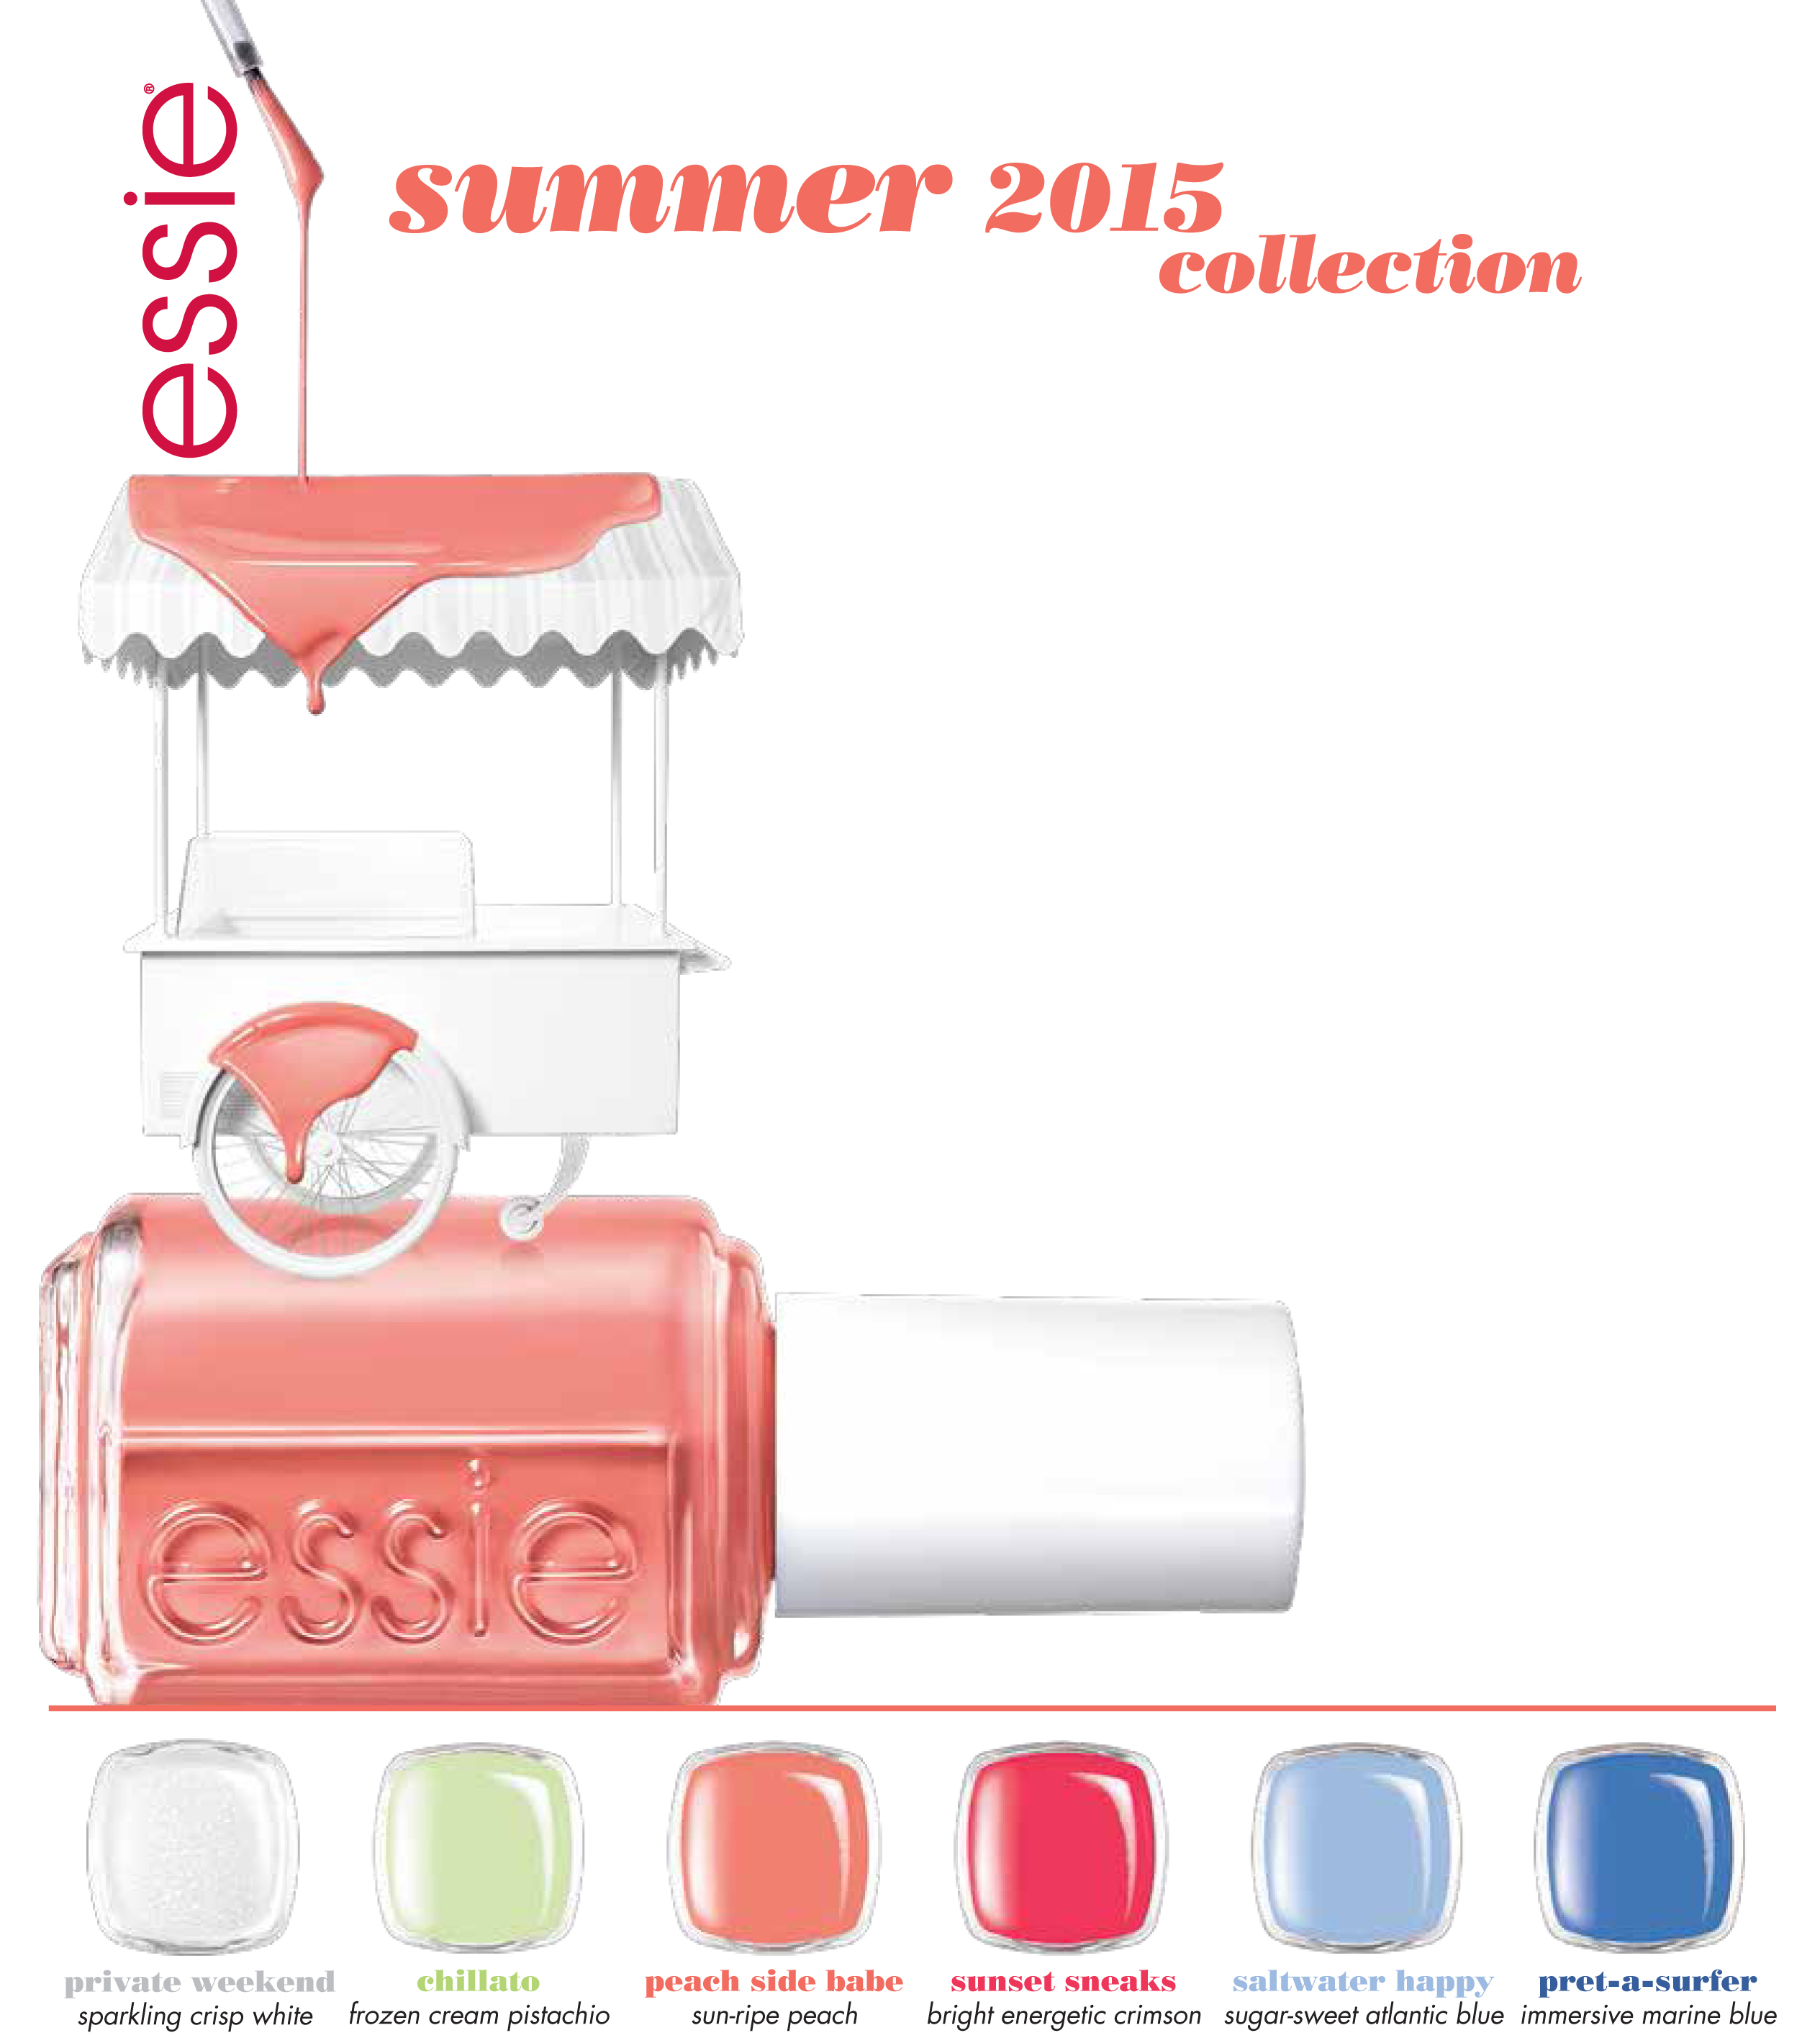 essie summer 2015 press release